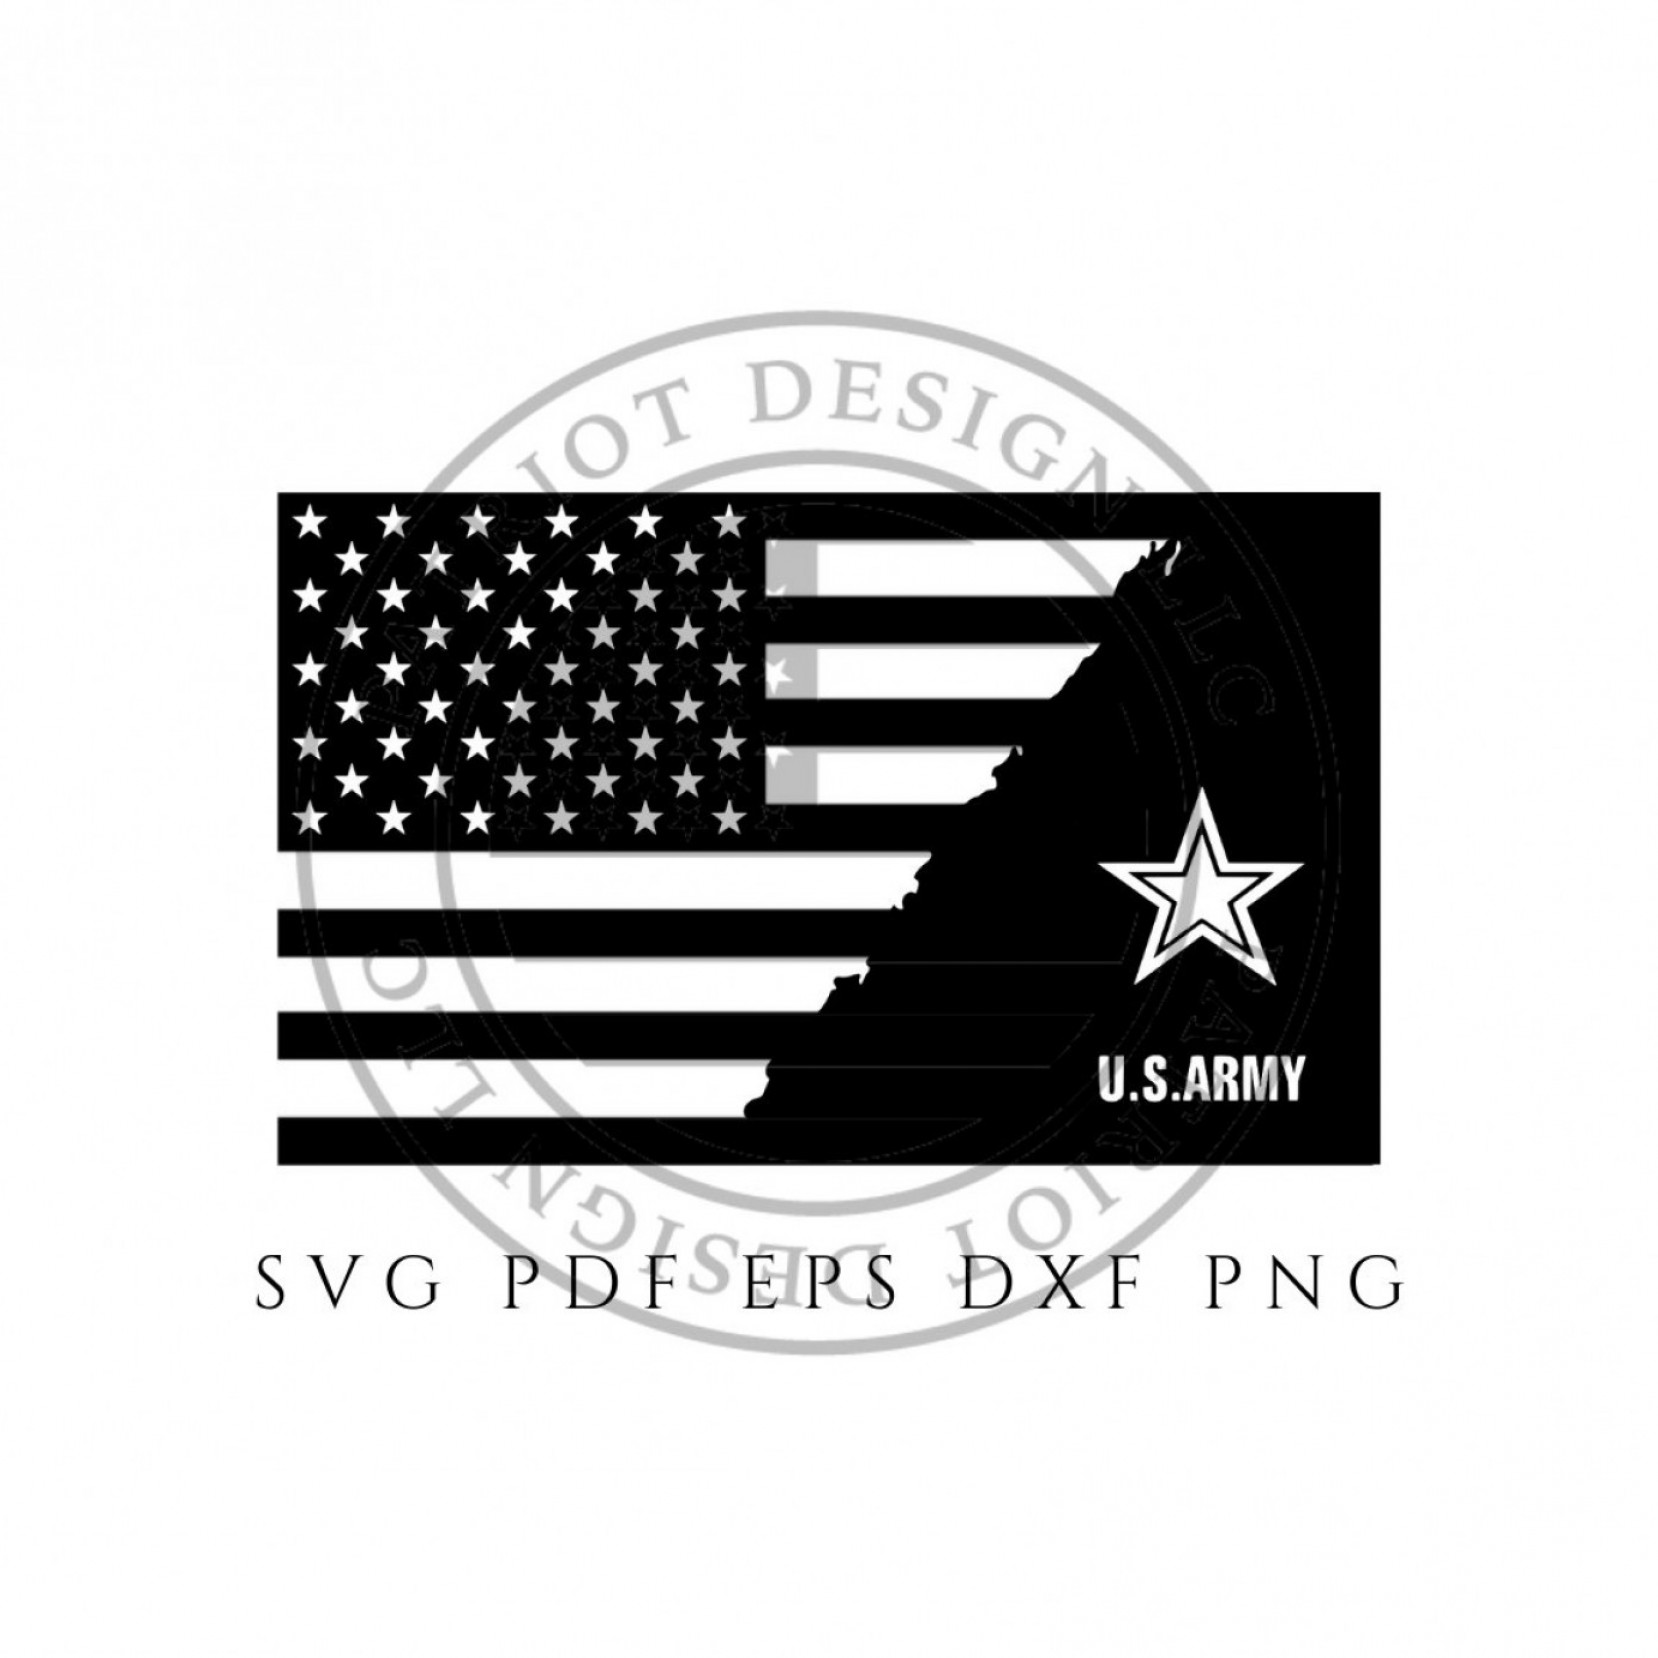 United States Armed Forces Logo Vector: Army Flag Us Army Army Logo Flag